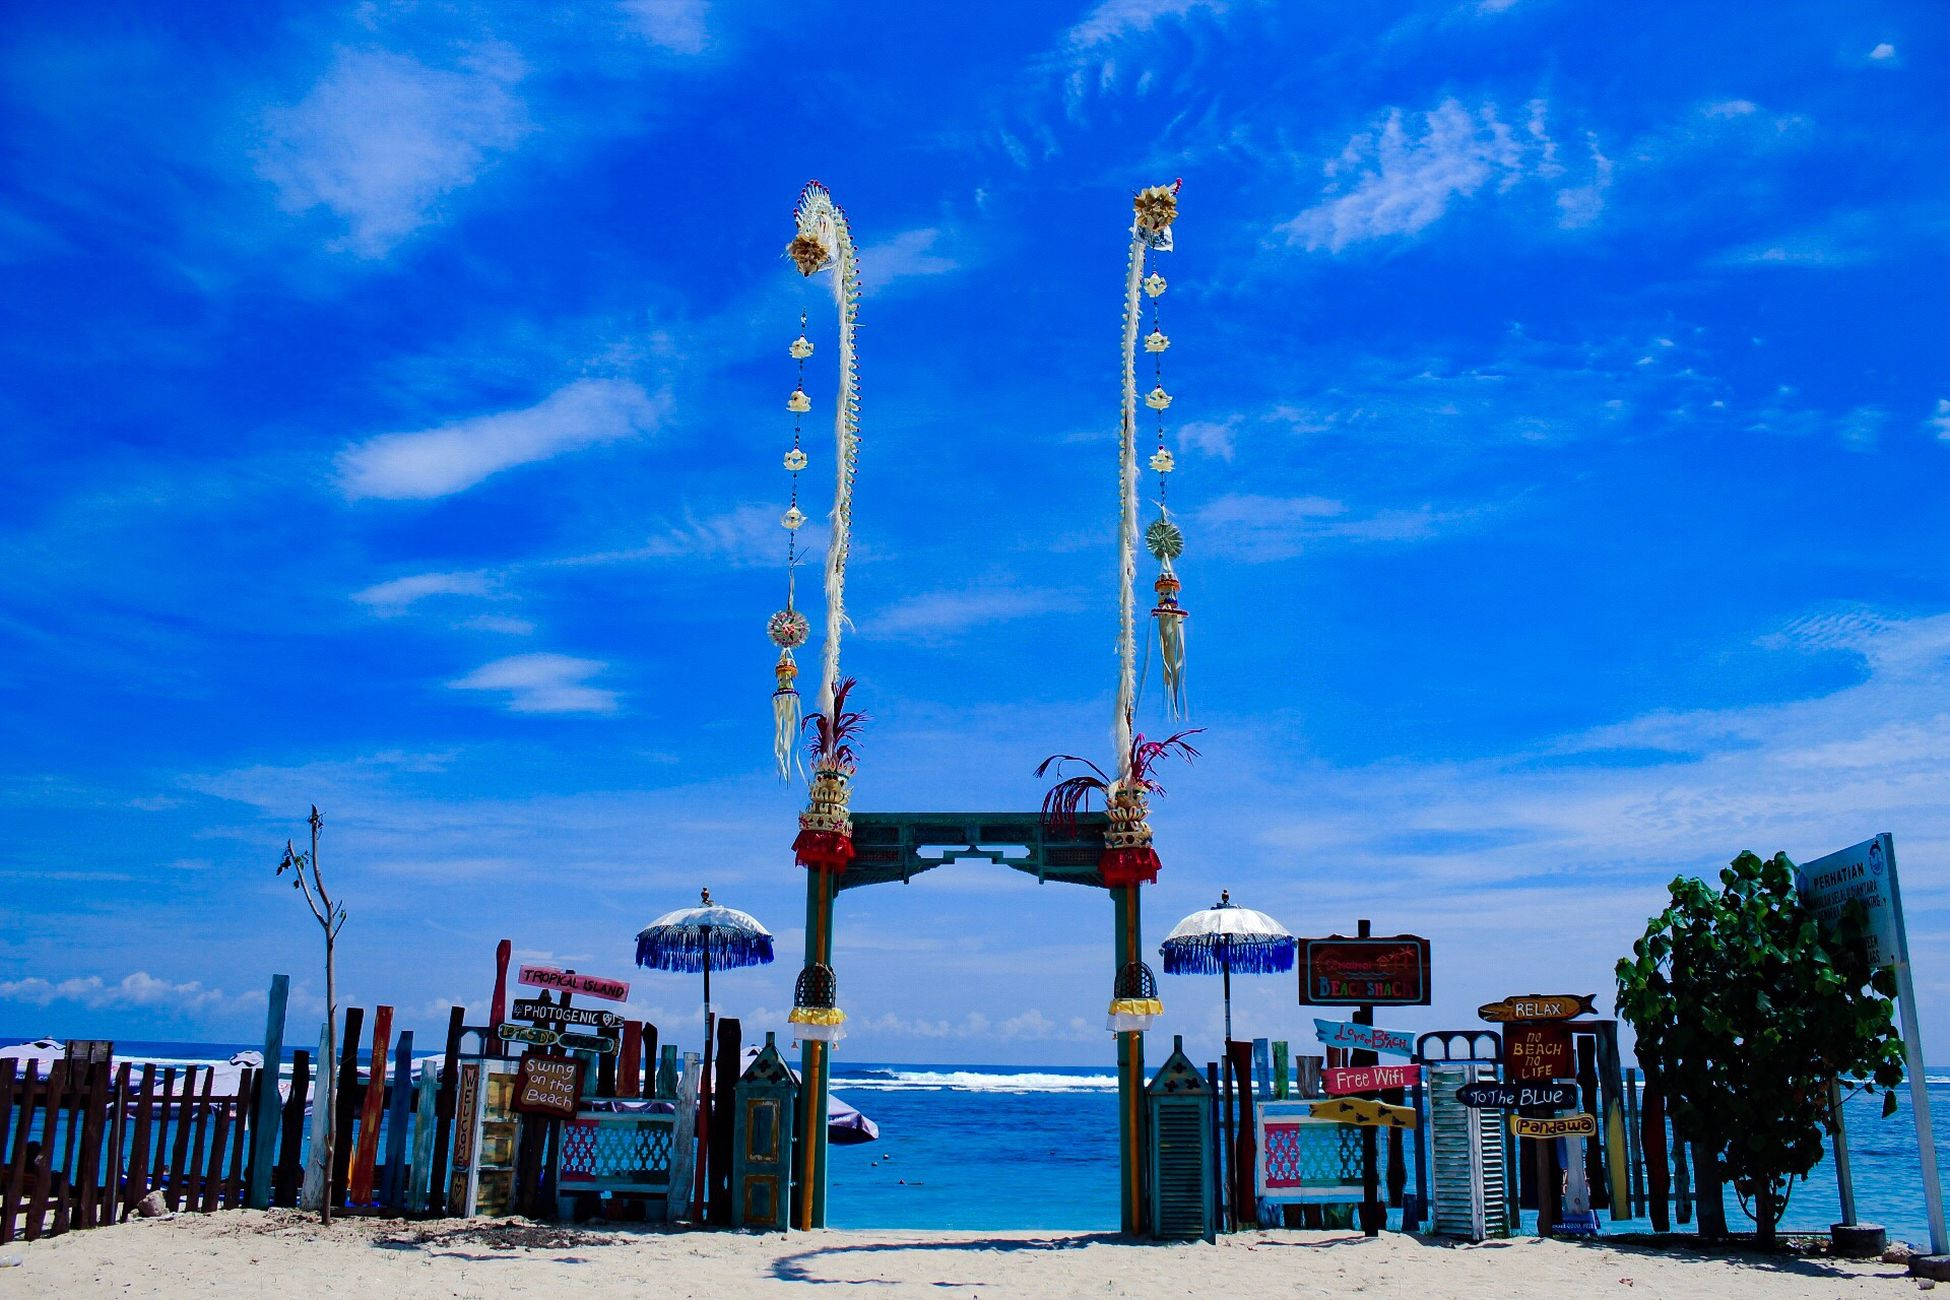 Beauty In Nature Sea Sky Water Blue Beach No People Scenics Outdoors Pantai Pandawa Bali Cloud - Sky Nature Day Amusement Park Built Structure Horizon Over Water Architecture